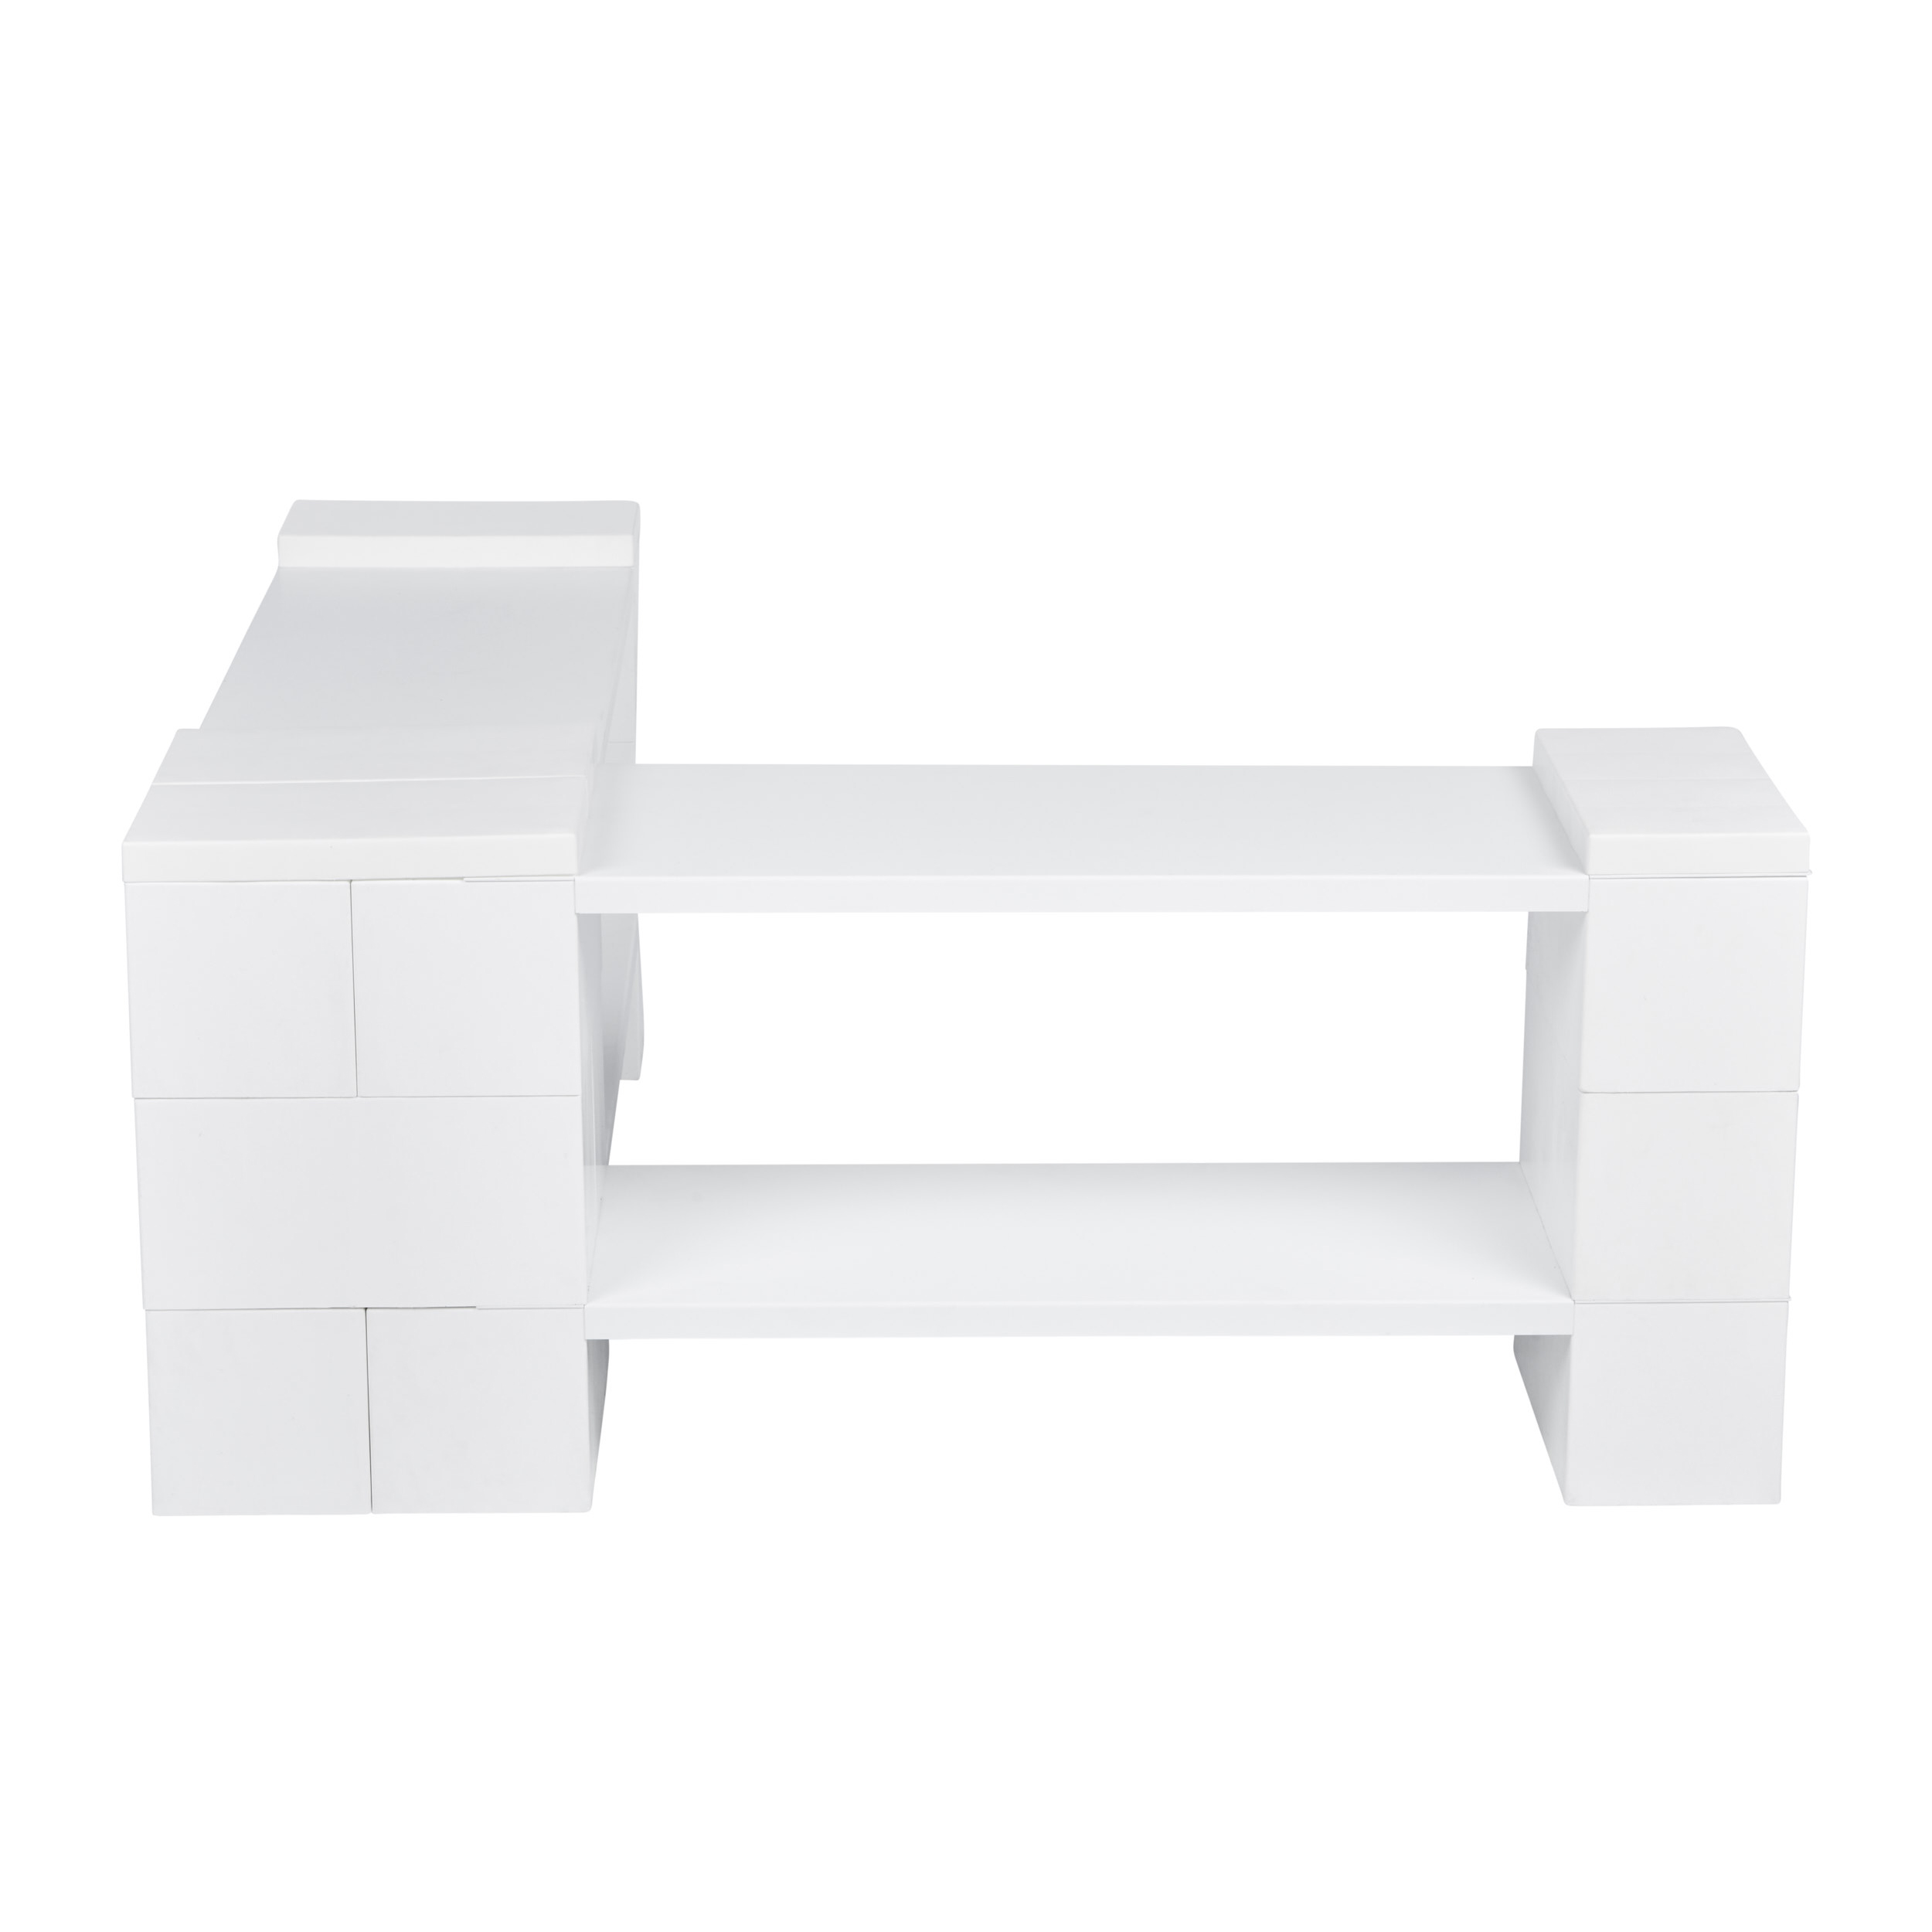 2 Level Corner Shelving Kit B